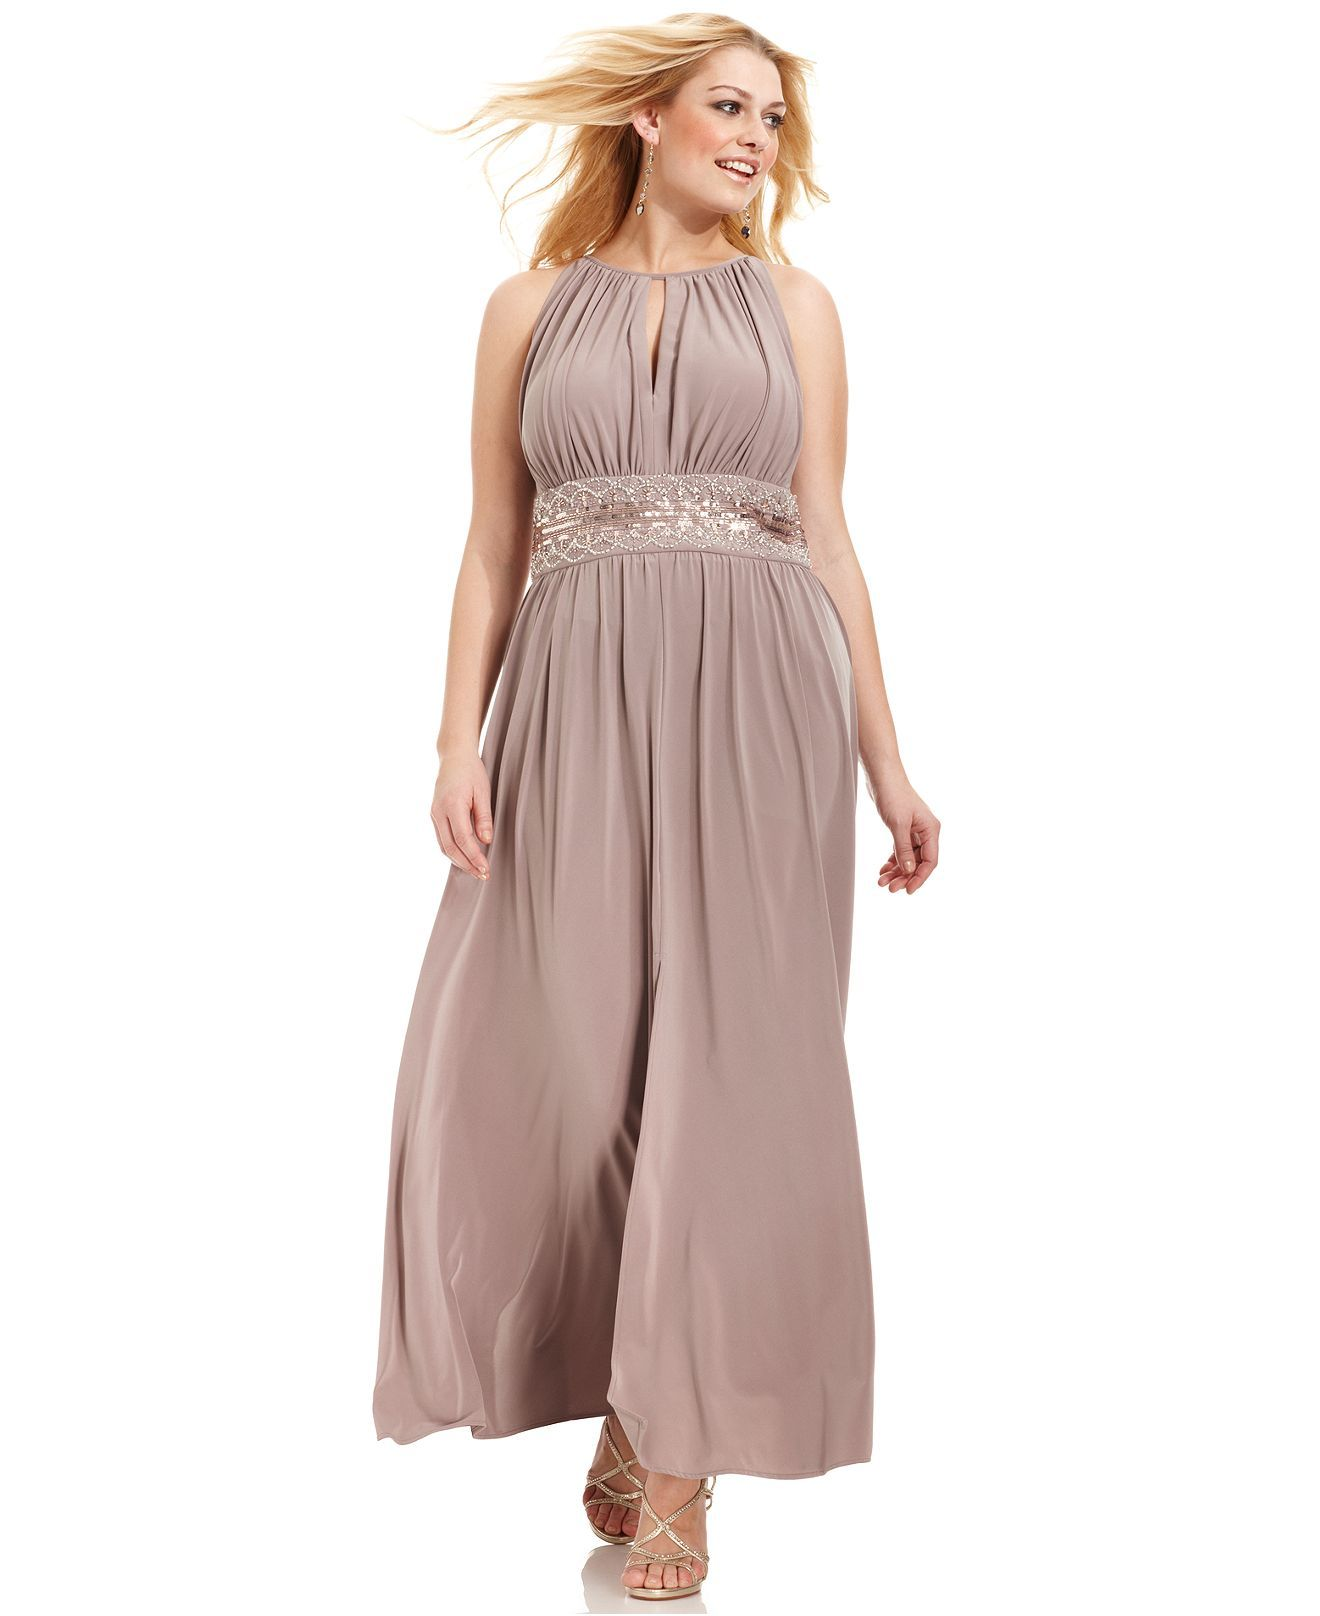 R&M Richards Plus Size Sleeveless Beaded Gown | Gowns, Clothes and Curvy